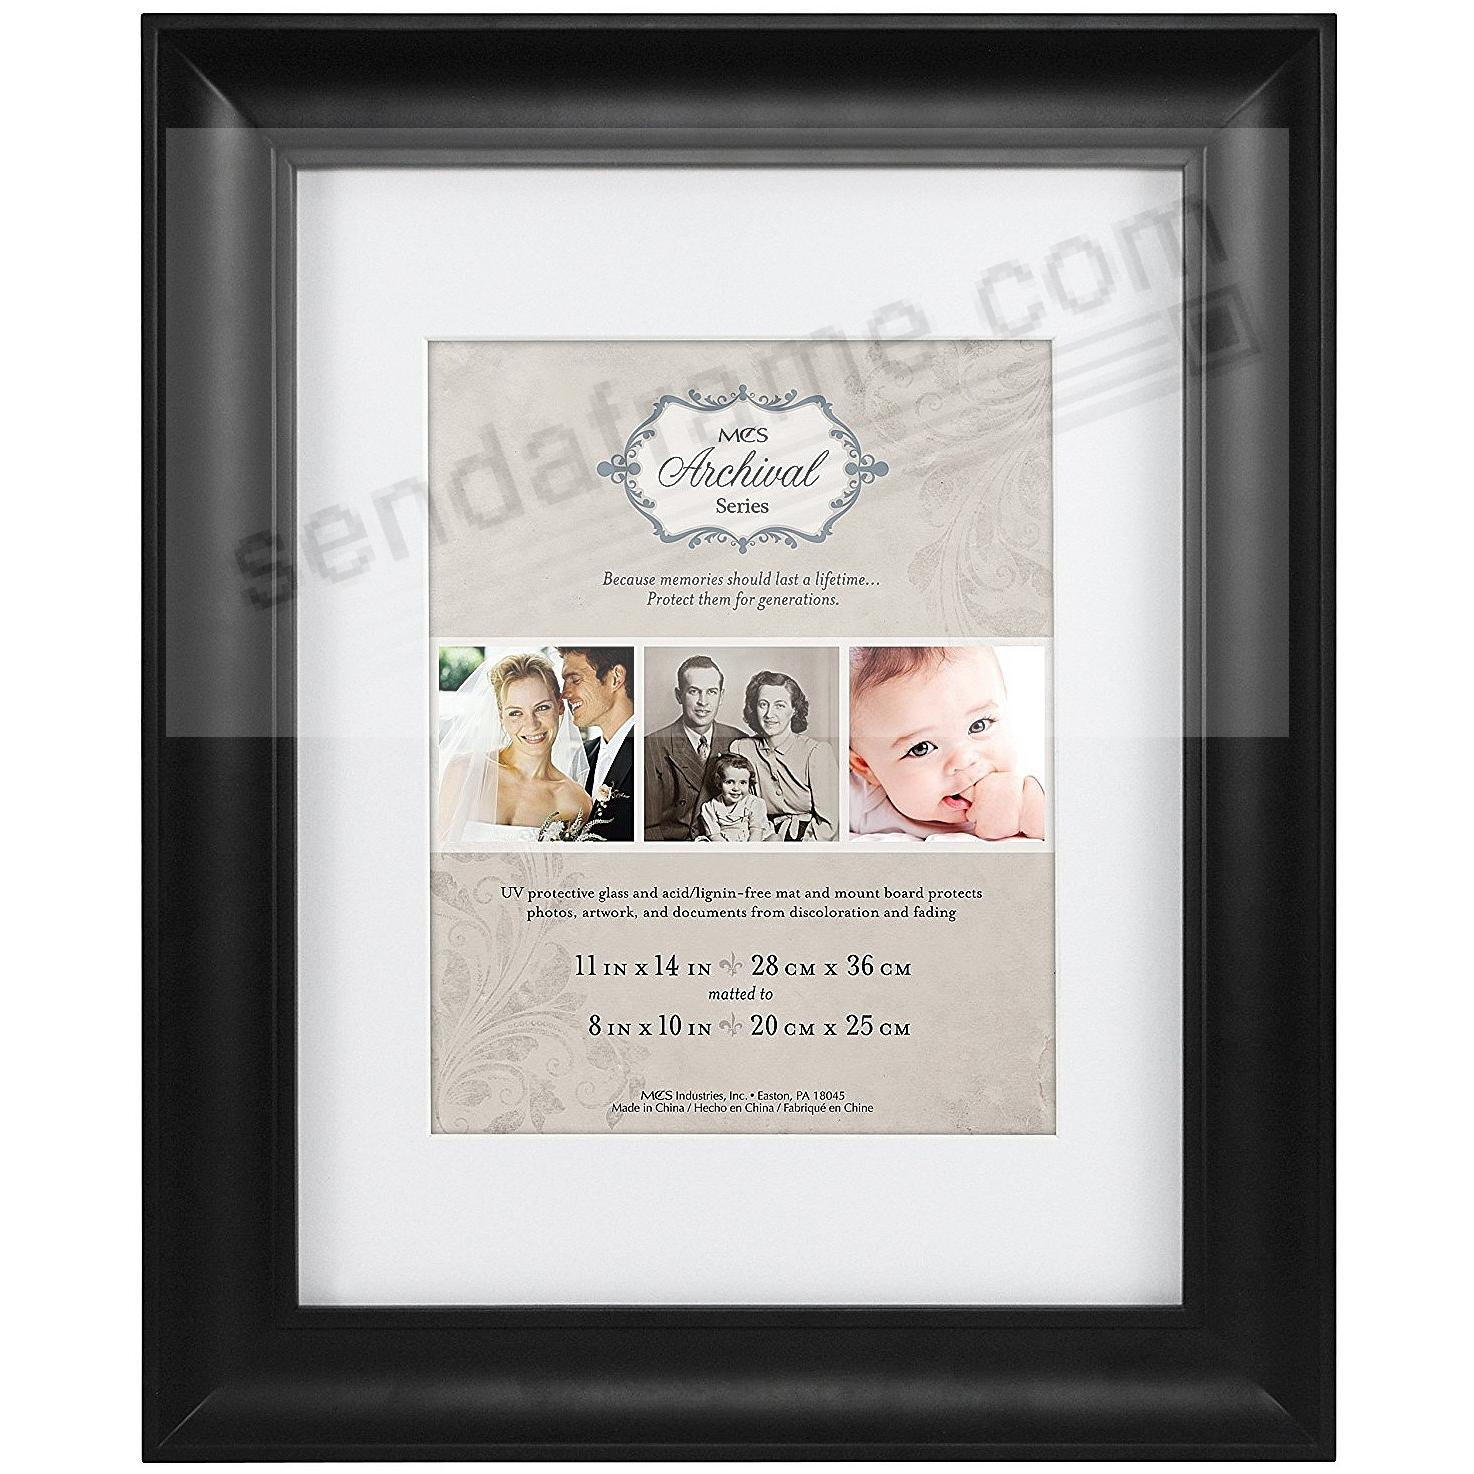 Black Archival Matted Wood Frame 11x148x10 By Mcs Picture Frames